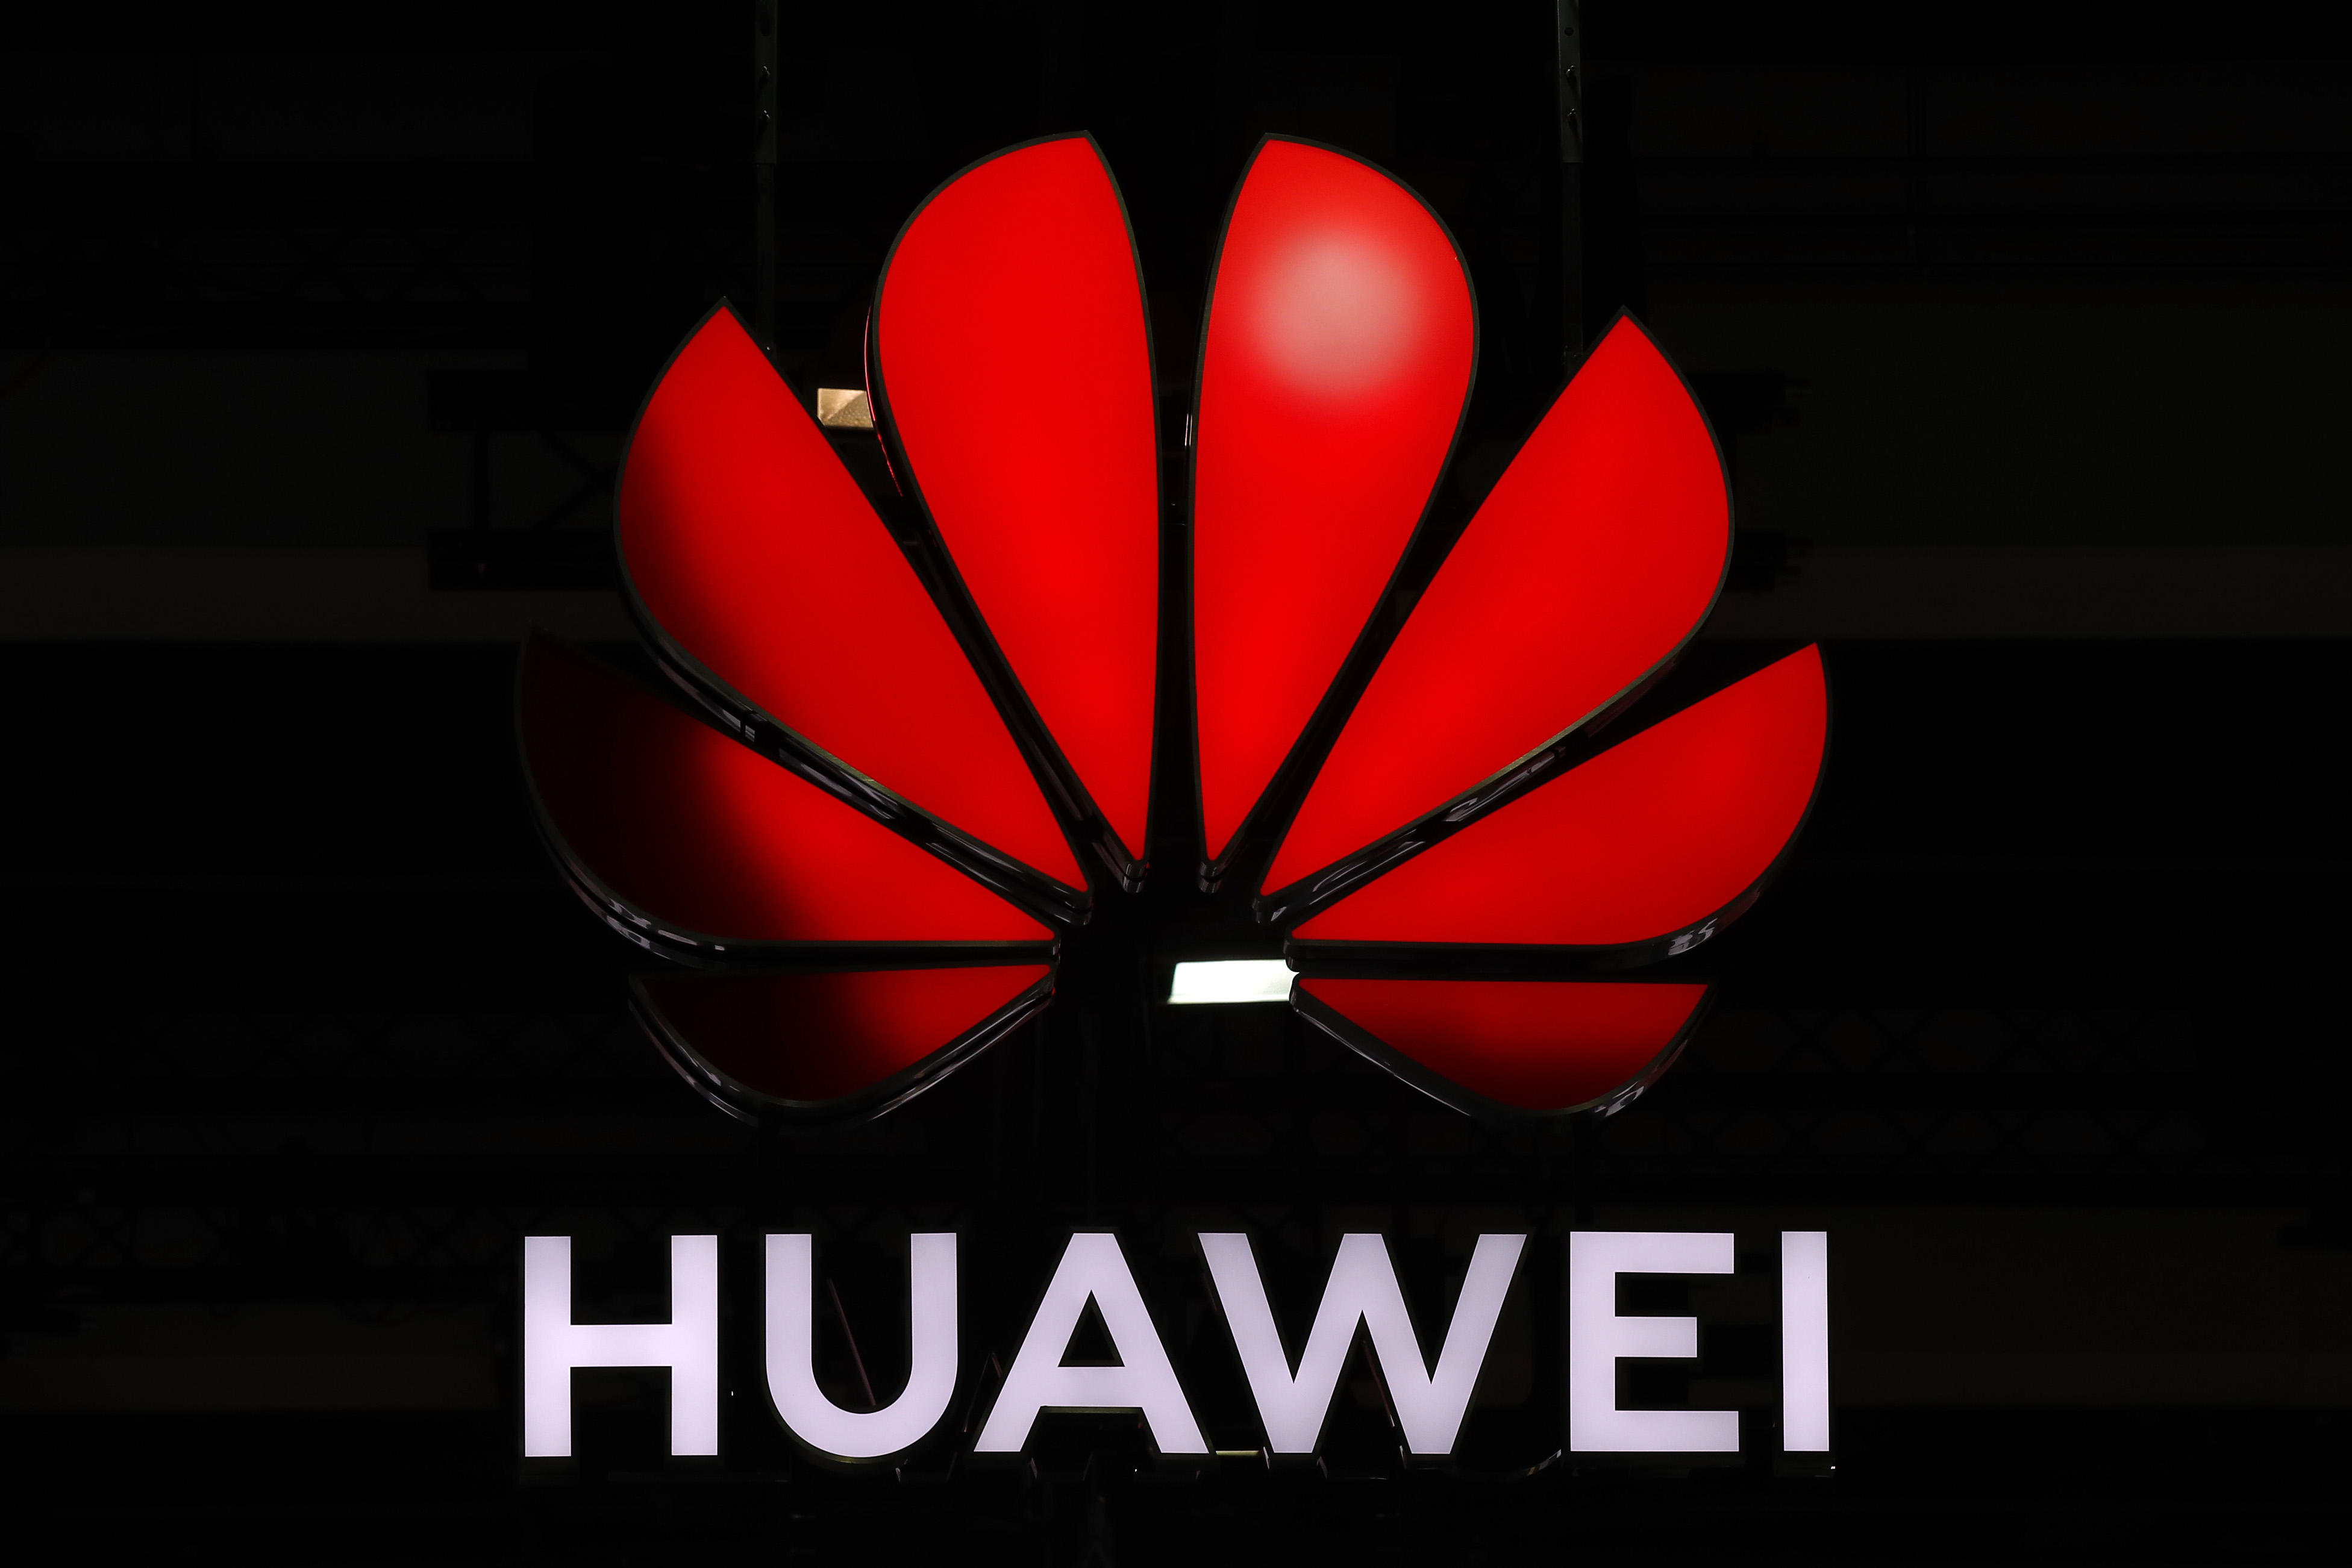 Huawei claims US charges of stealing trade secrets are an attempt to 'irrevocably damage' its image